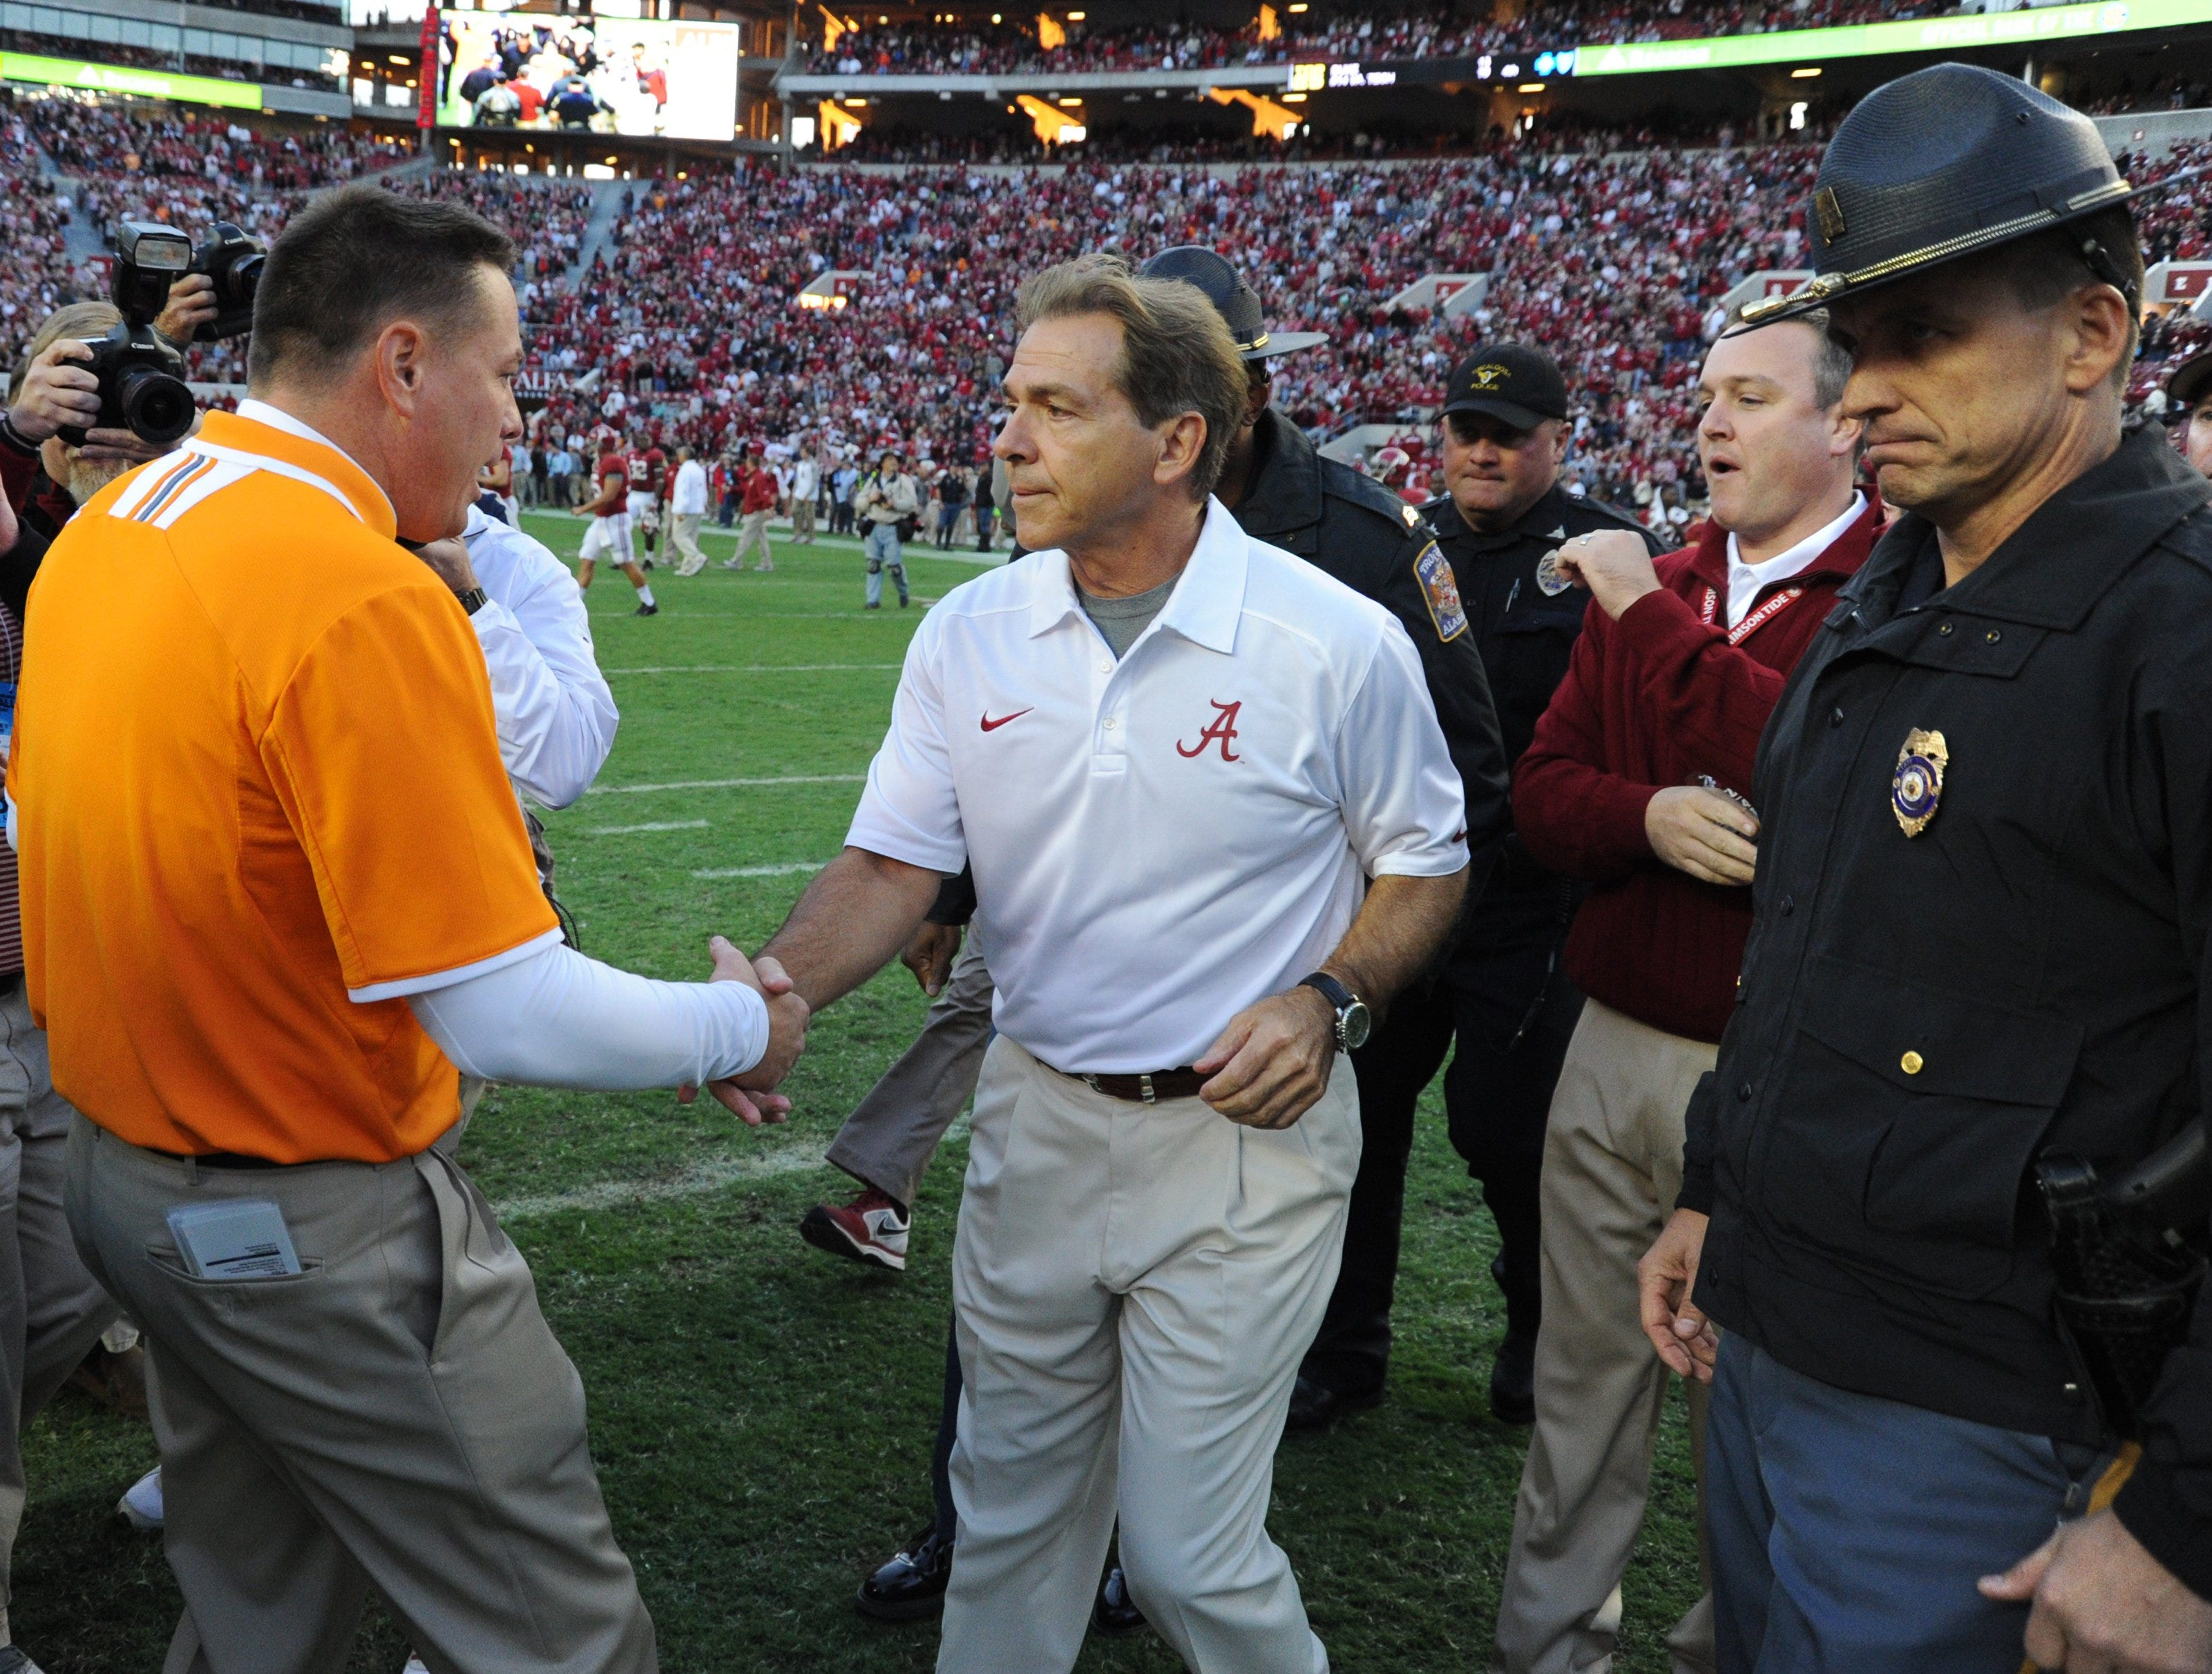 Alabama head coach Nick Saban and Tennessee head coach Butch Jones meet center field following their 45-10 victory over the Volunteers Saturday, Oct. 26, 2013 at Bryant-Denny Stadium in Tuscaloosa, Ala.